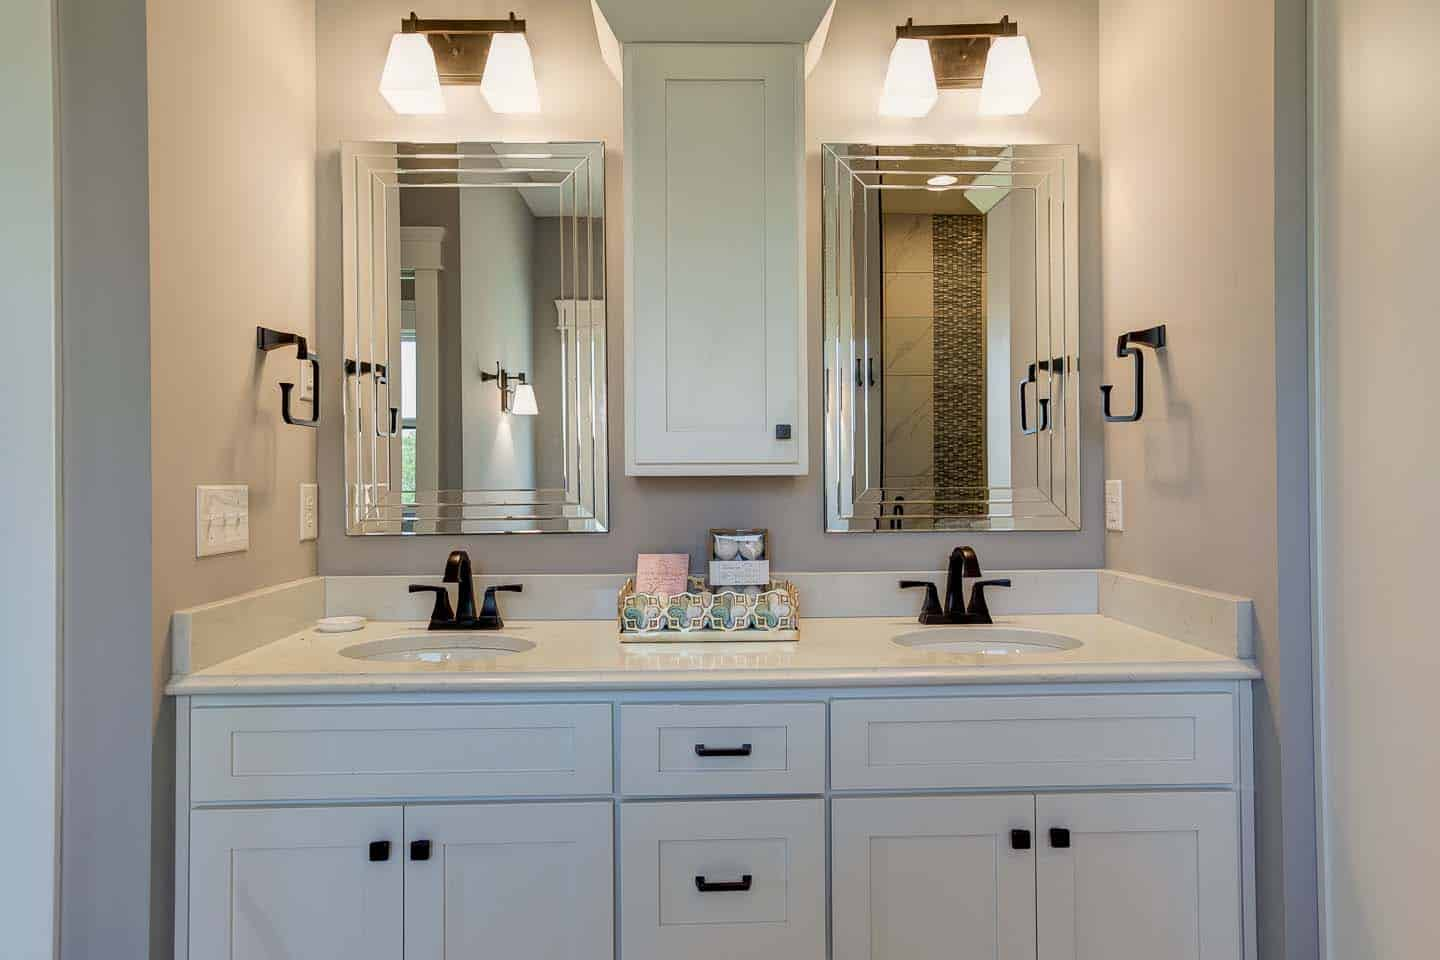 Evansville Parade of Homes | Reinbrecht Homes | Centerra Ridge Lot 156 Jack and Jill Sinks